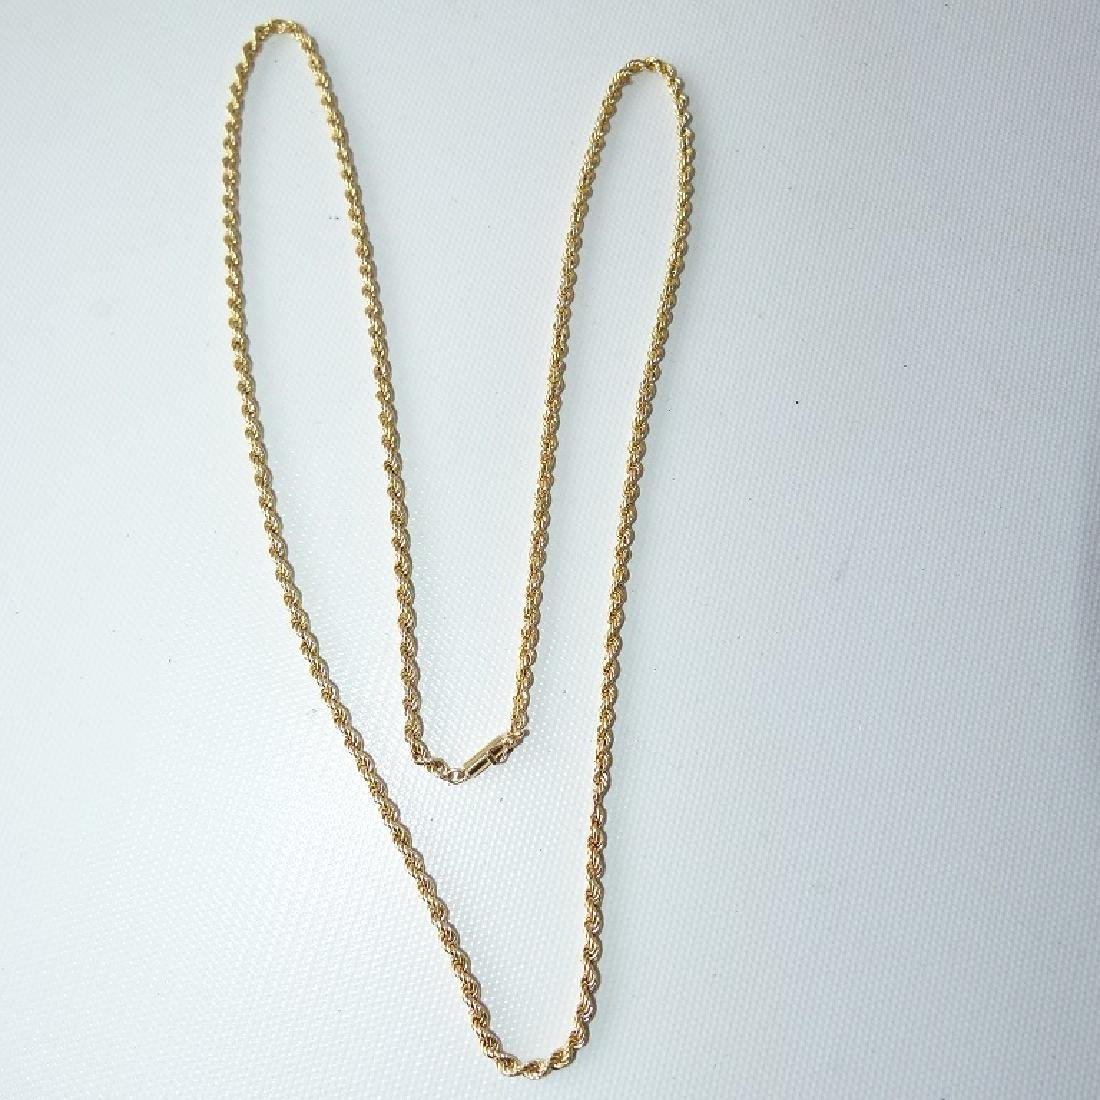 MODERN 14KT YELLOW GOLD ROPE NECKLACE - 2